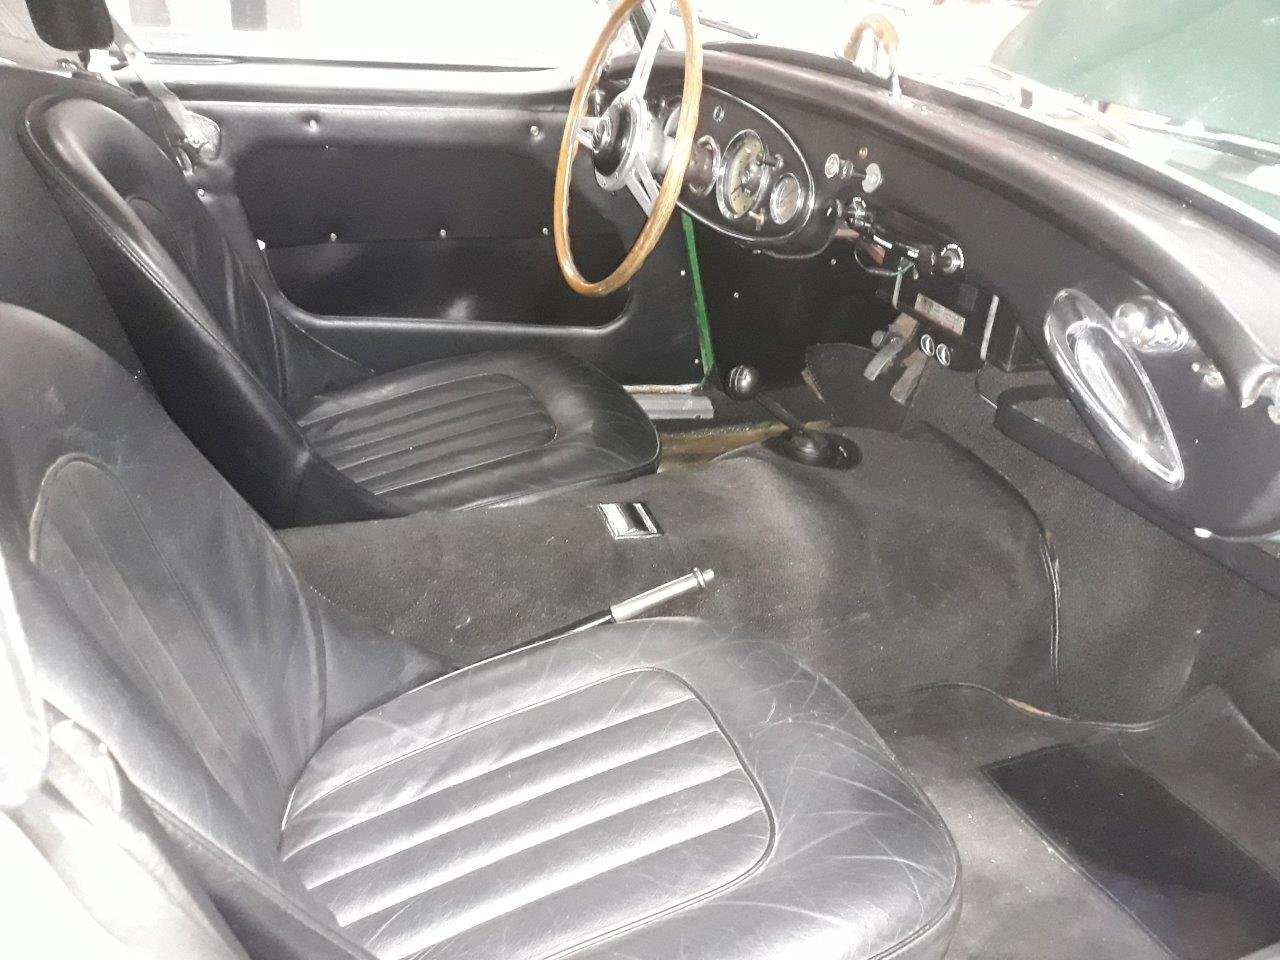 1959 Austin Healey 3000 MK1  For Sale (picture 3 of 3)